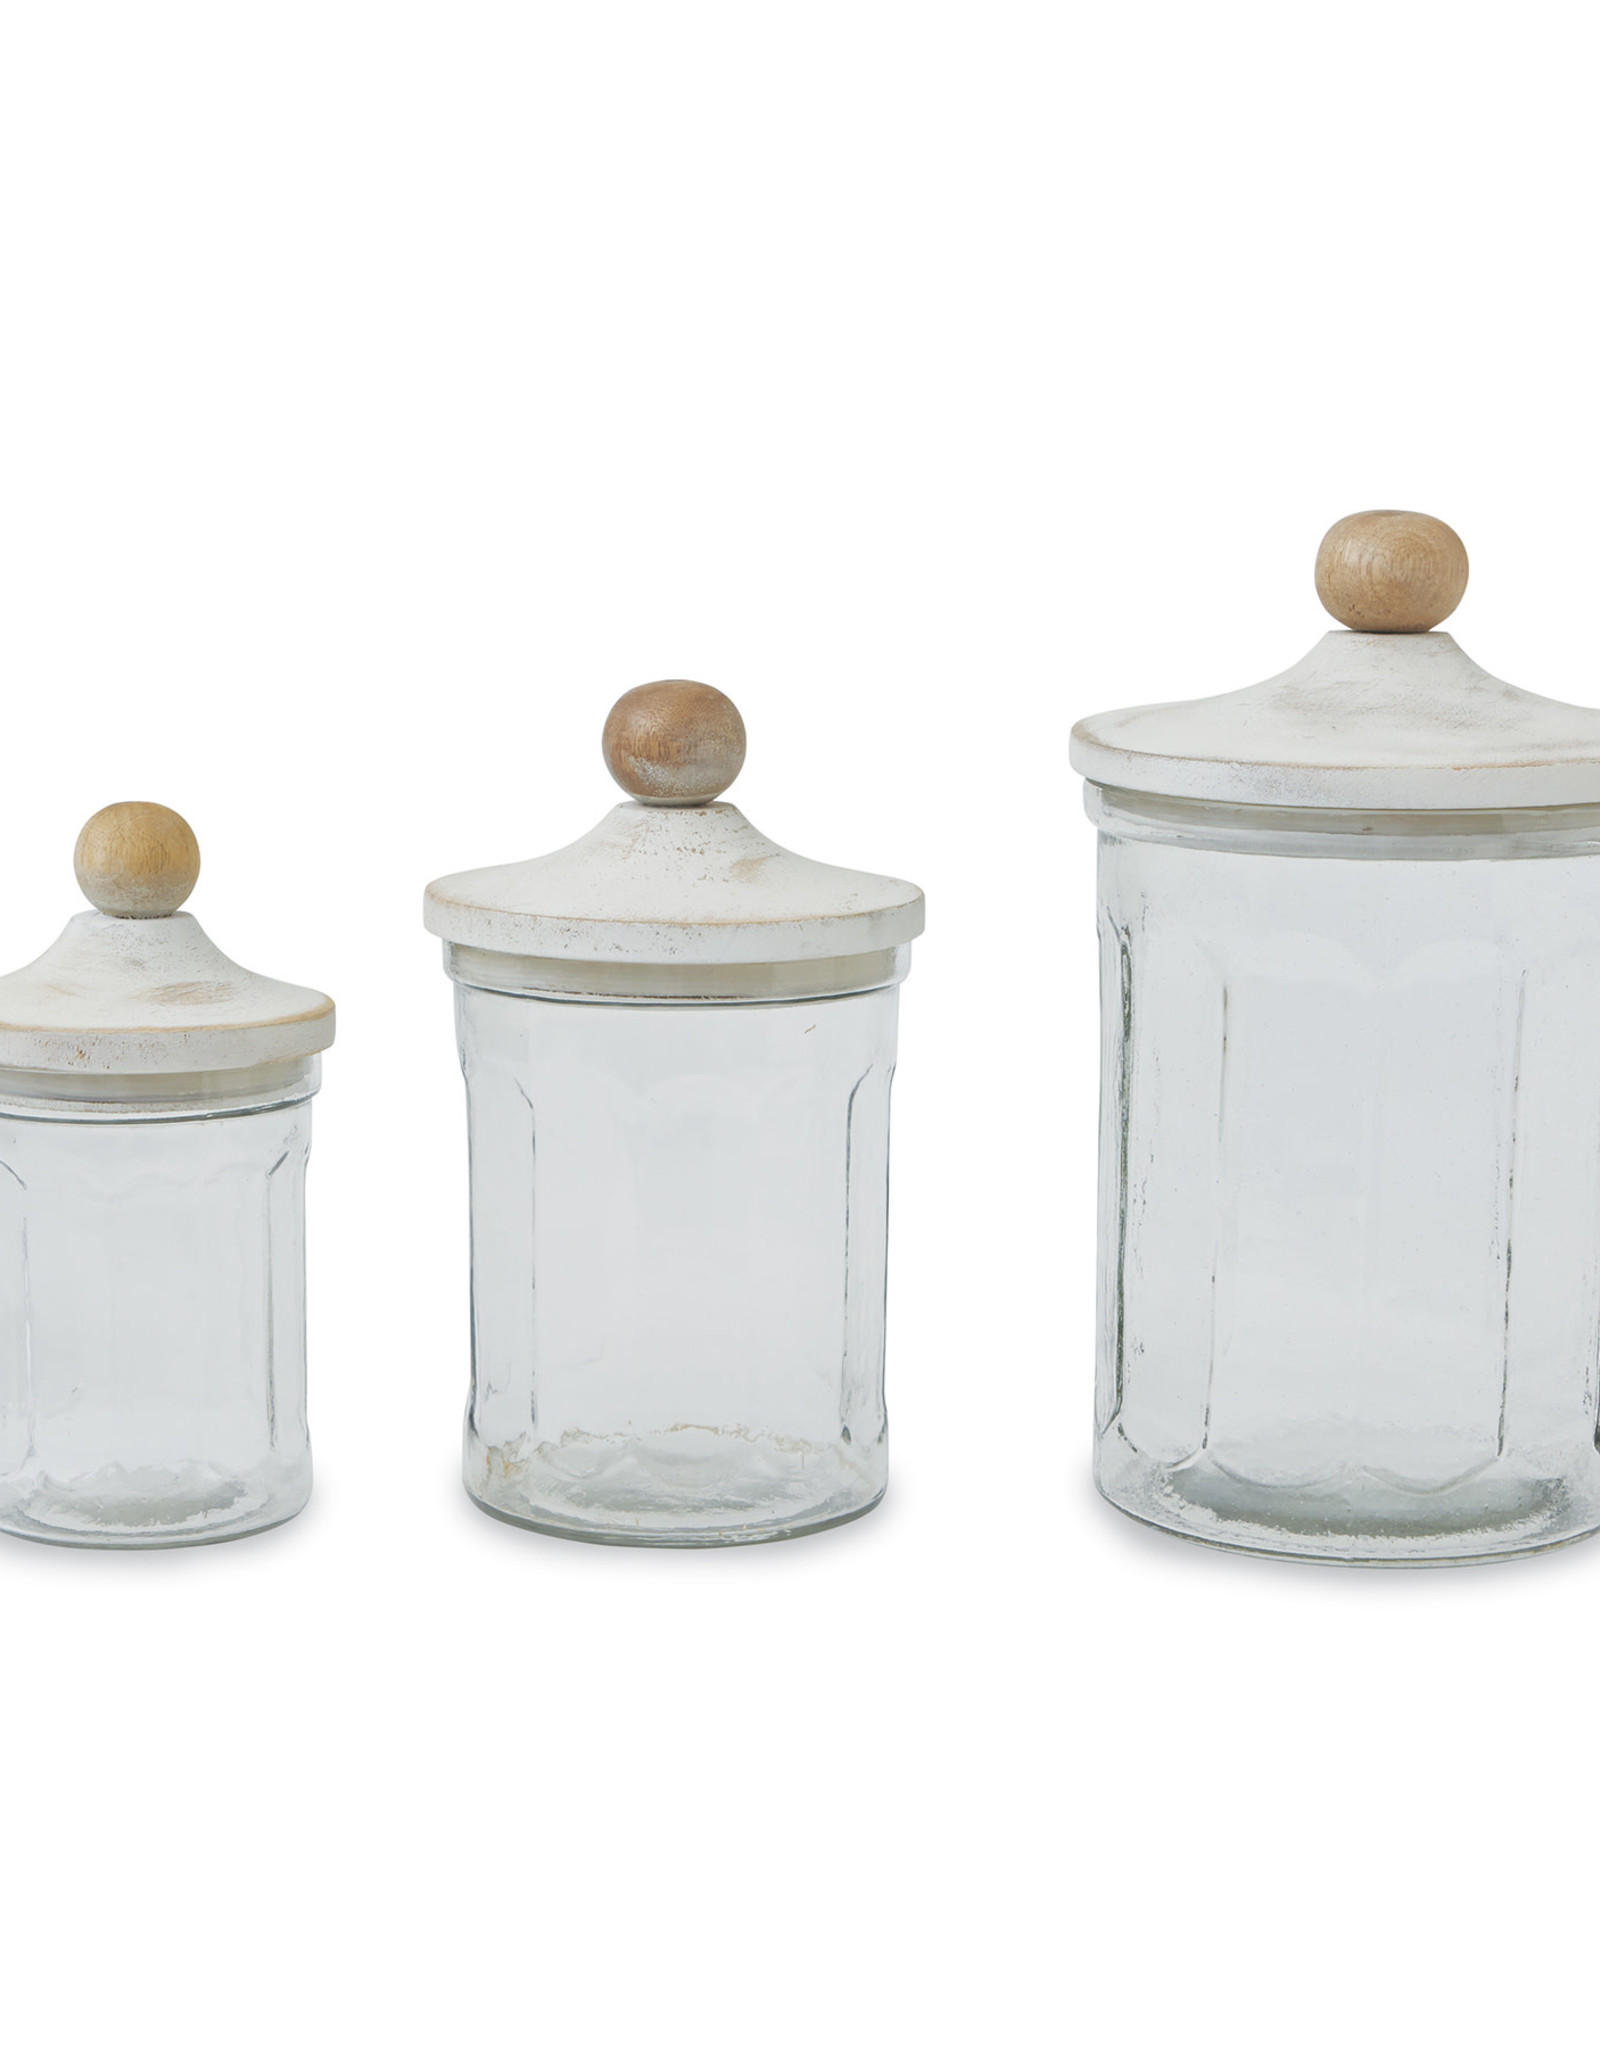 Wooden & Glass Canisters - Set of 3